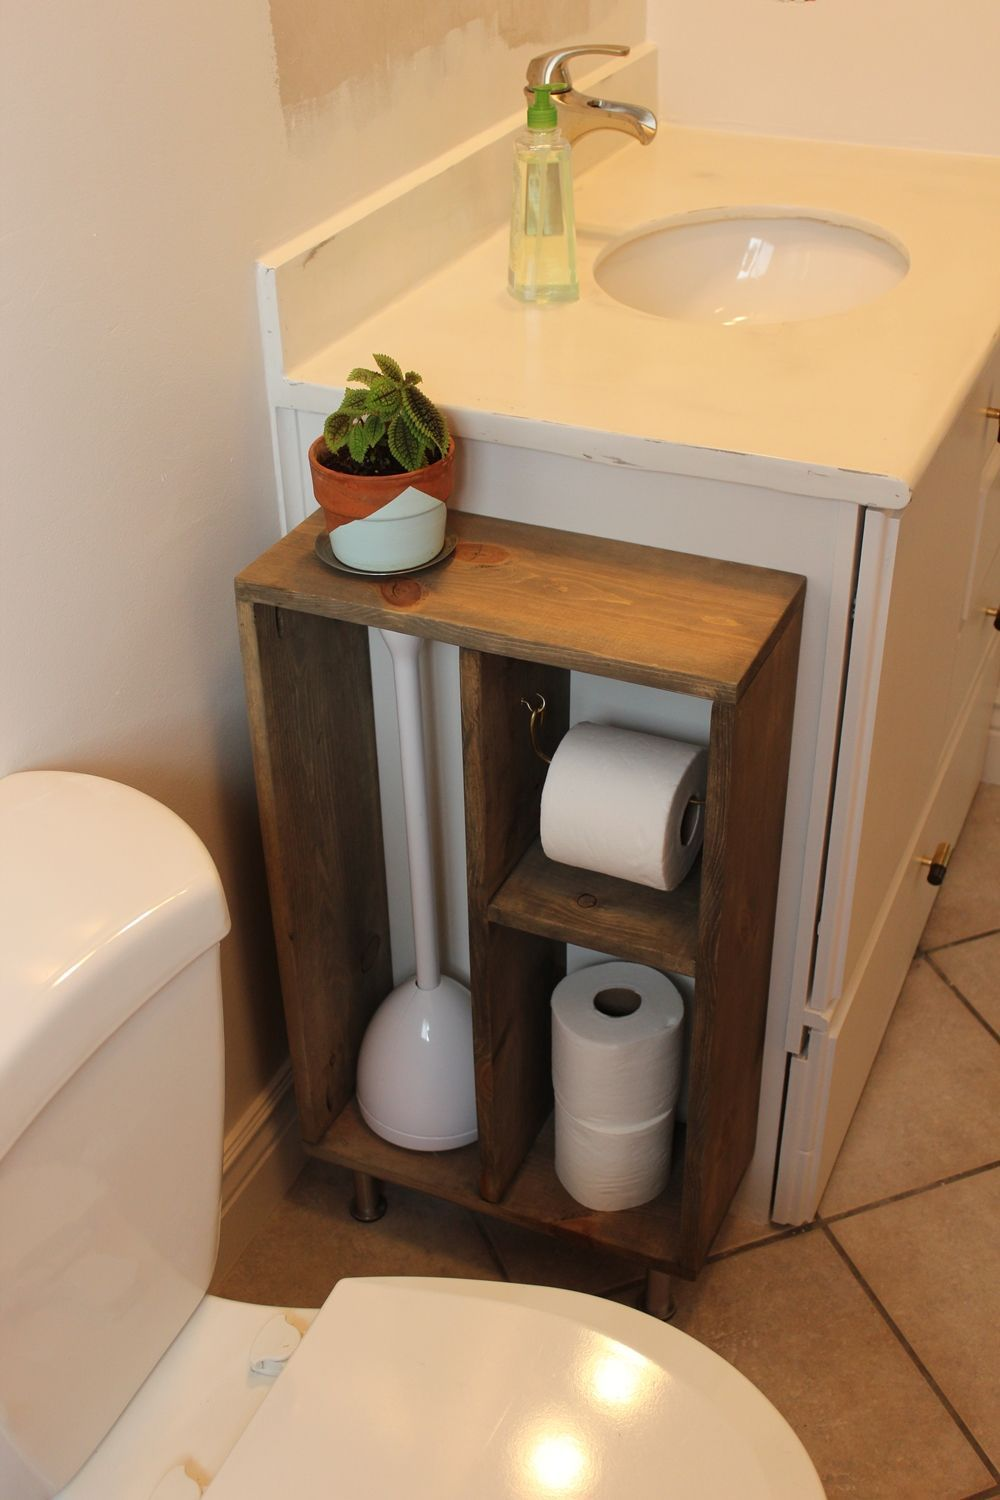 This Is A Tutorial For Building Your Own Custom Storage Shelving To Attach The Side Of Bathroom Vanity Idea Contain Toilet Paper And Oth